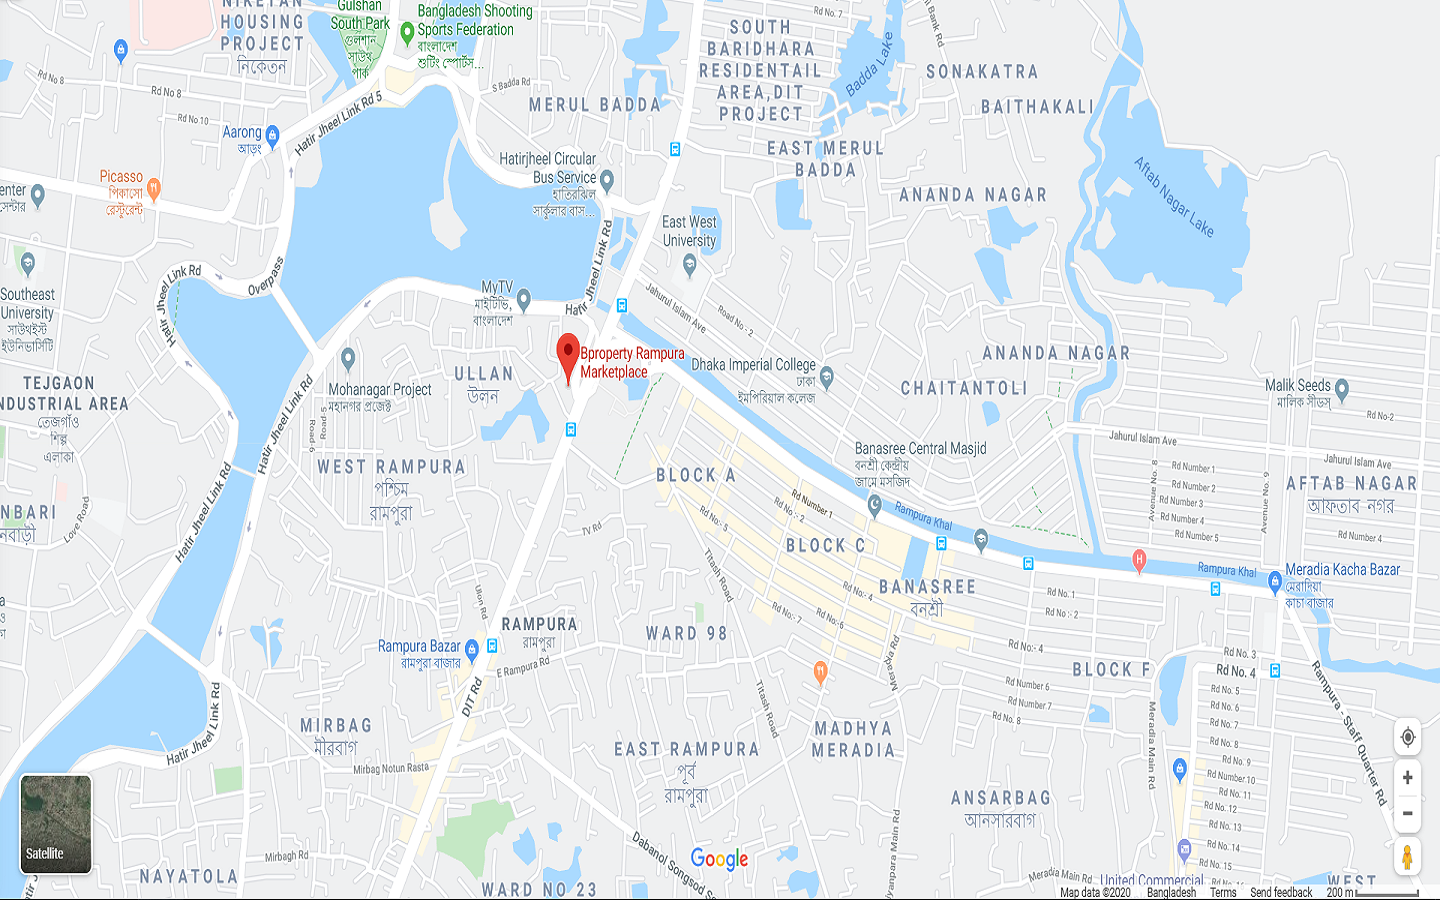 Displaying the location of the Bproperty Marketplace Rampura